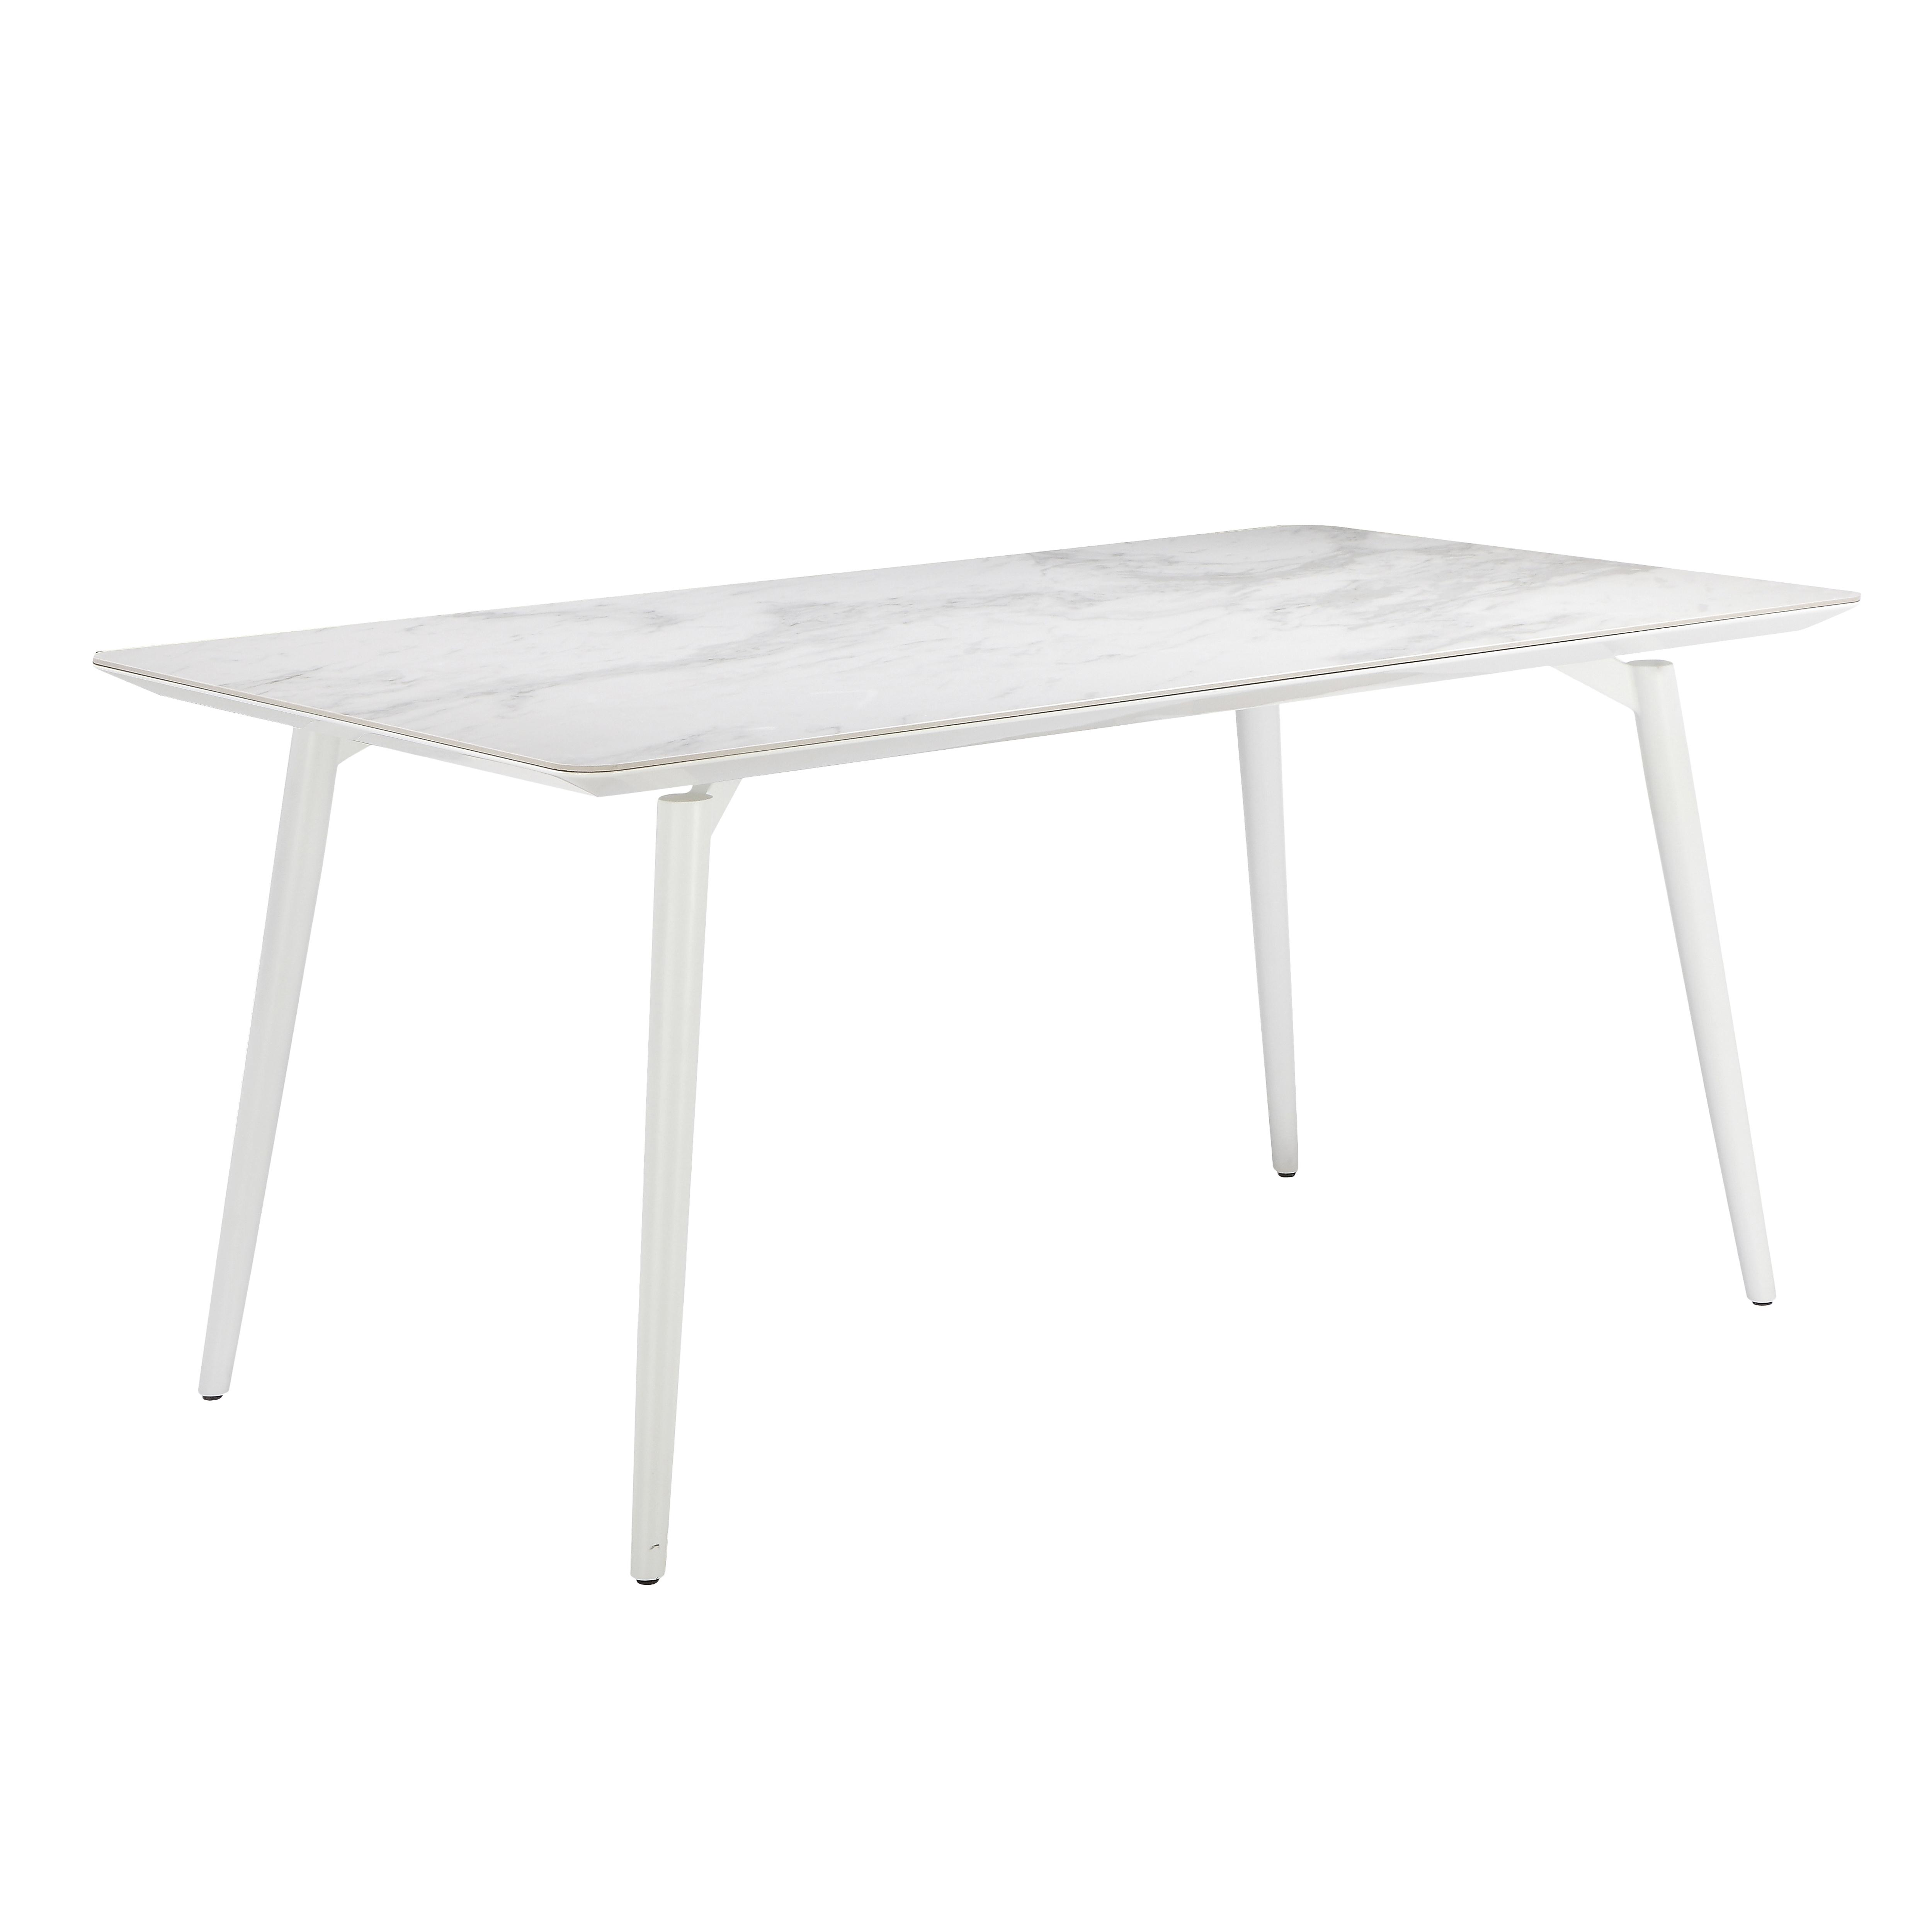 Buco marble ceramic 4 seater dining table white